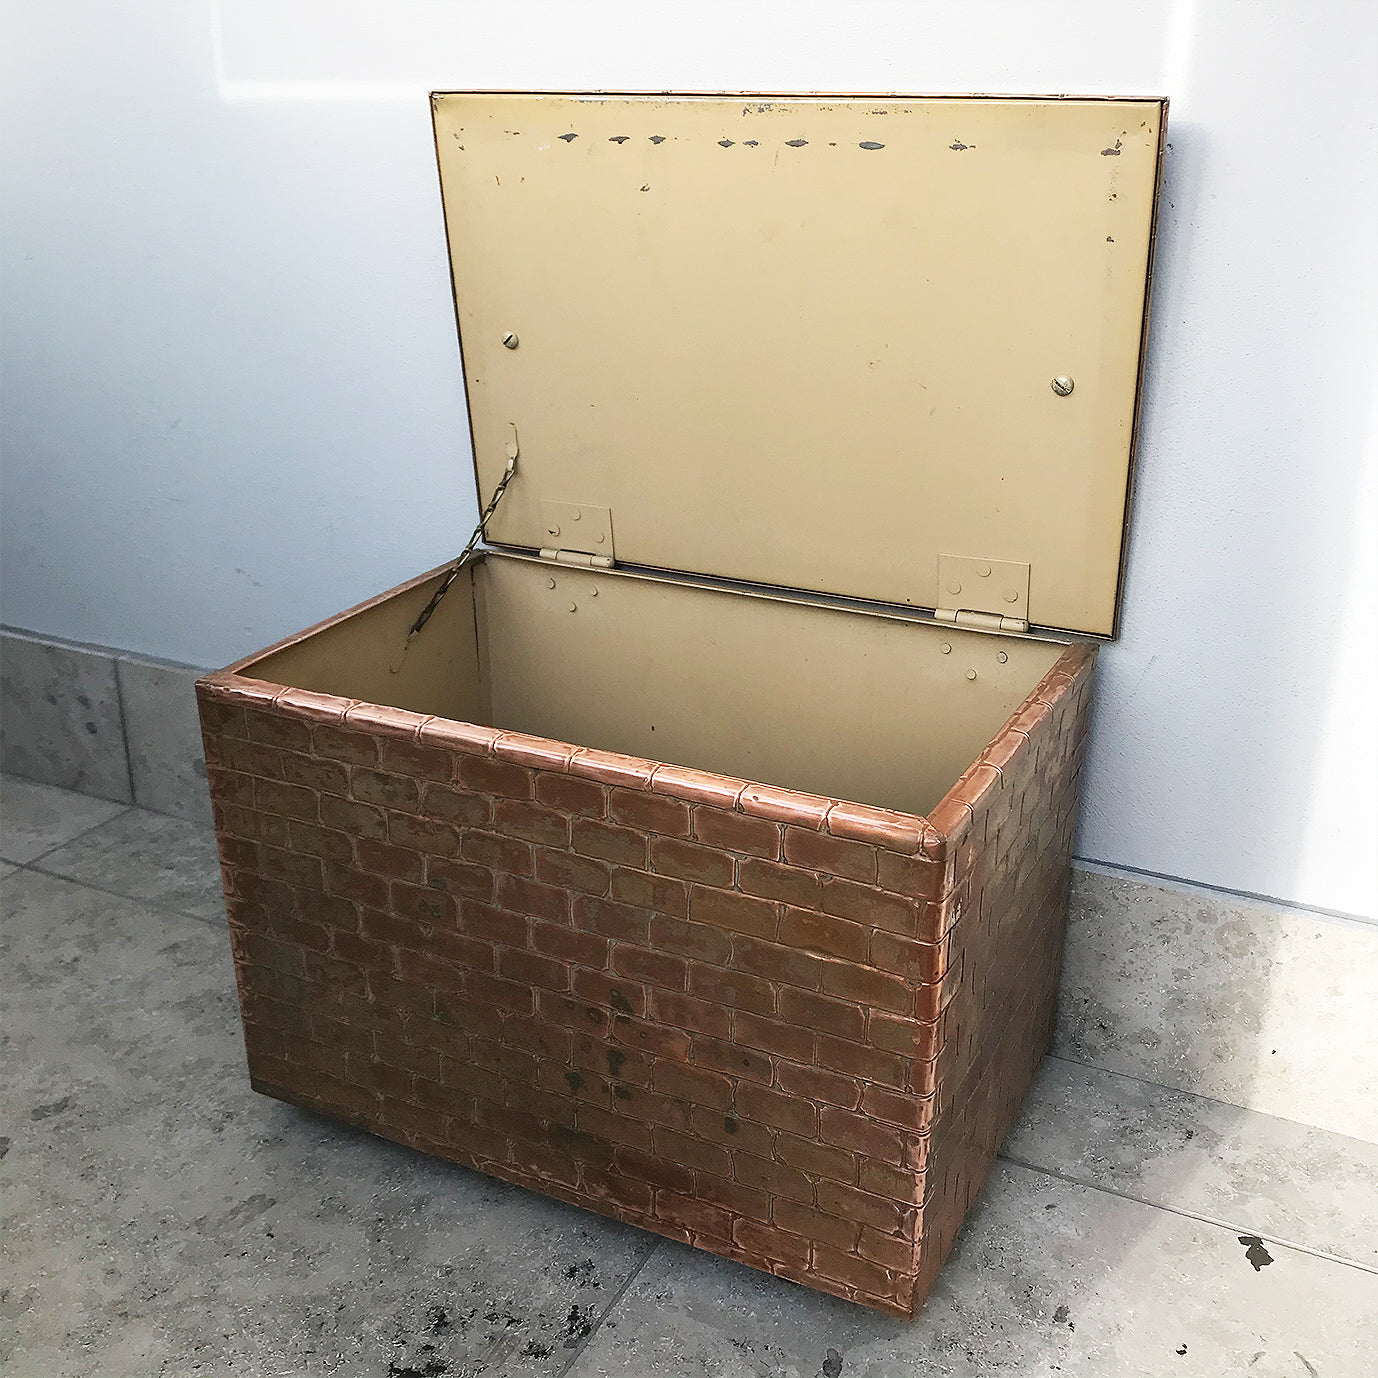 Stylish useful Vintage Copper trunk. It has a brick like pattern and a great patina - SHOP NOW - www.intovintage.co.uk